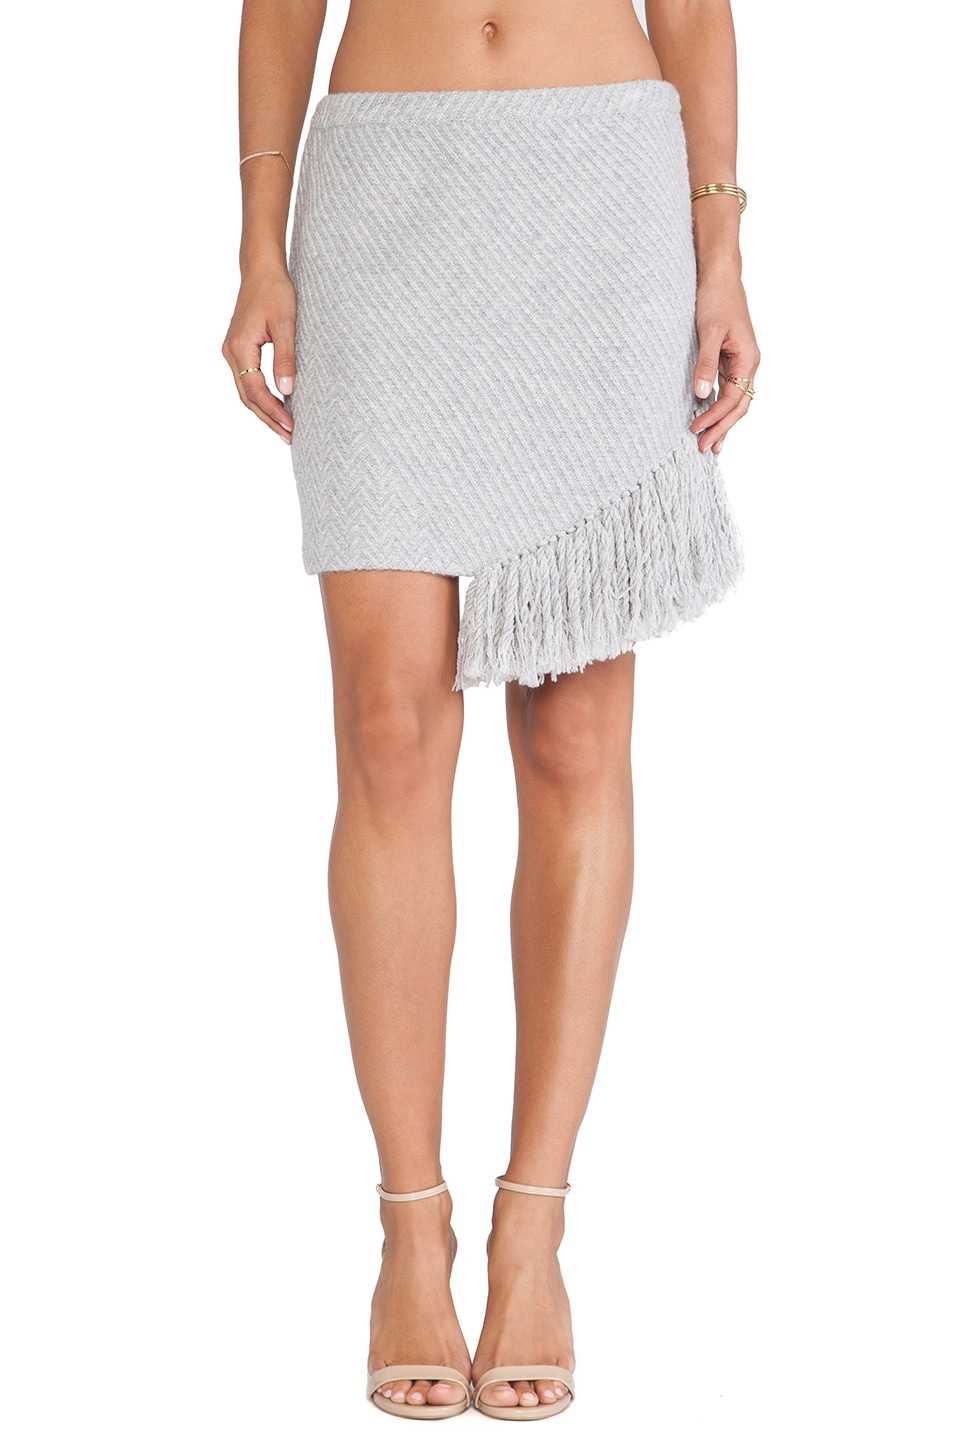 Thakoon Addition Fringe Skirt in Grey Melange